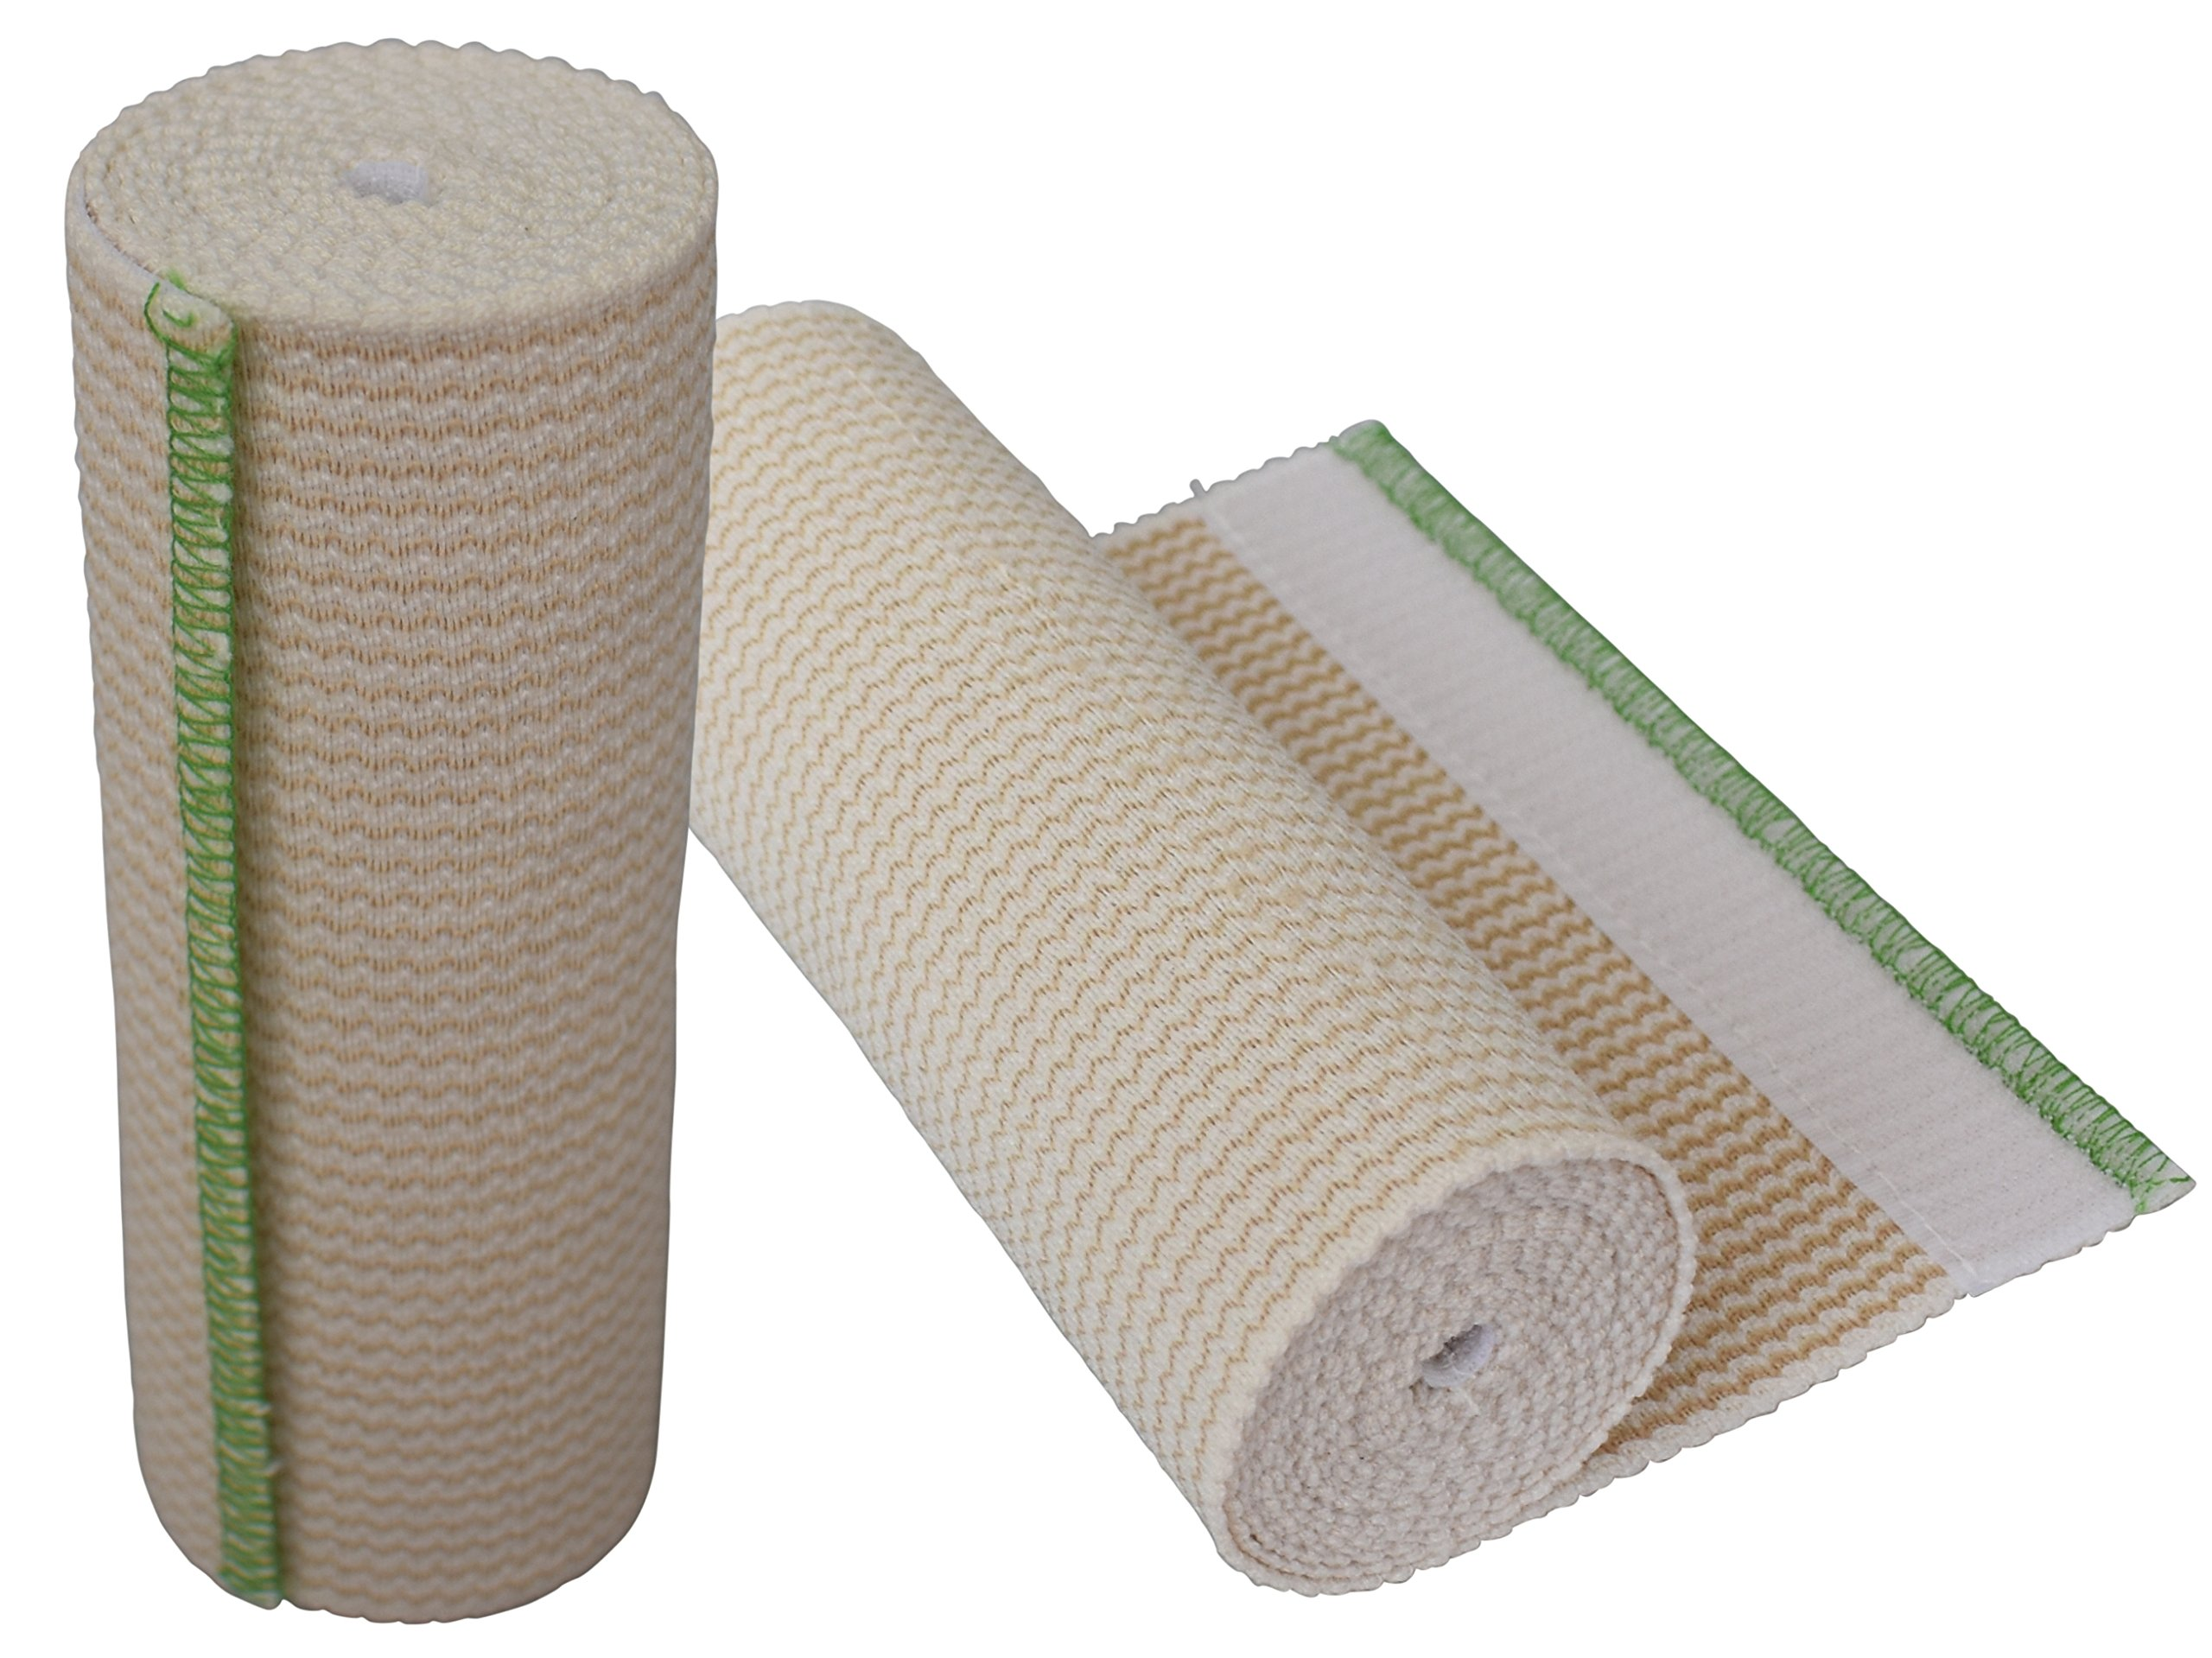 """GT® 6"""" Cotton Elastic Bandage with Hook and Loop Closure on both ends, 6 inches wide x (13 to 15 ft. when stretched), 2 Pack"""